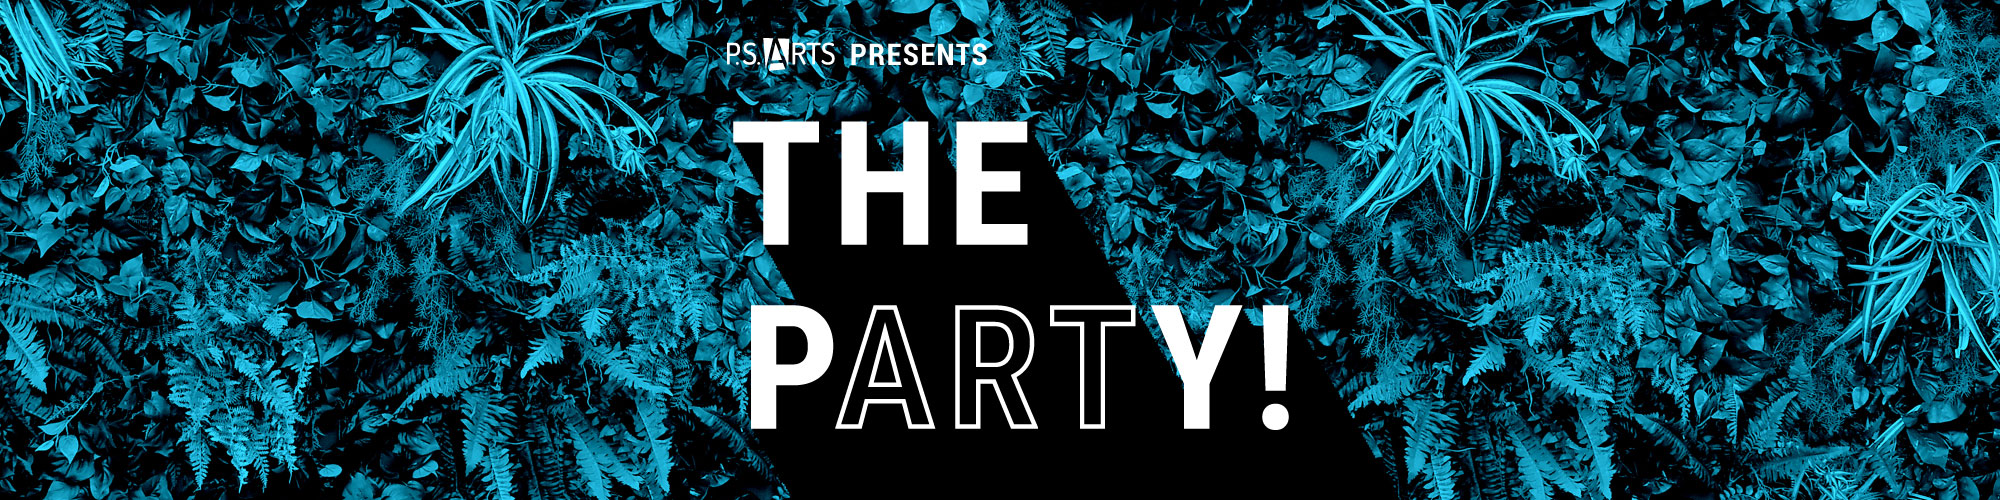 P.S. ARTS Presents The pARTy!